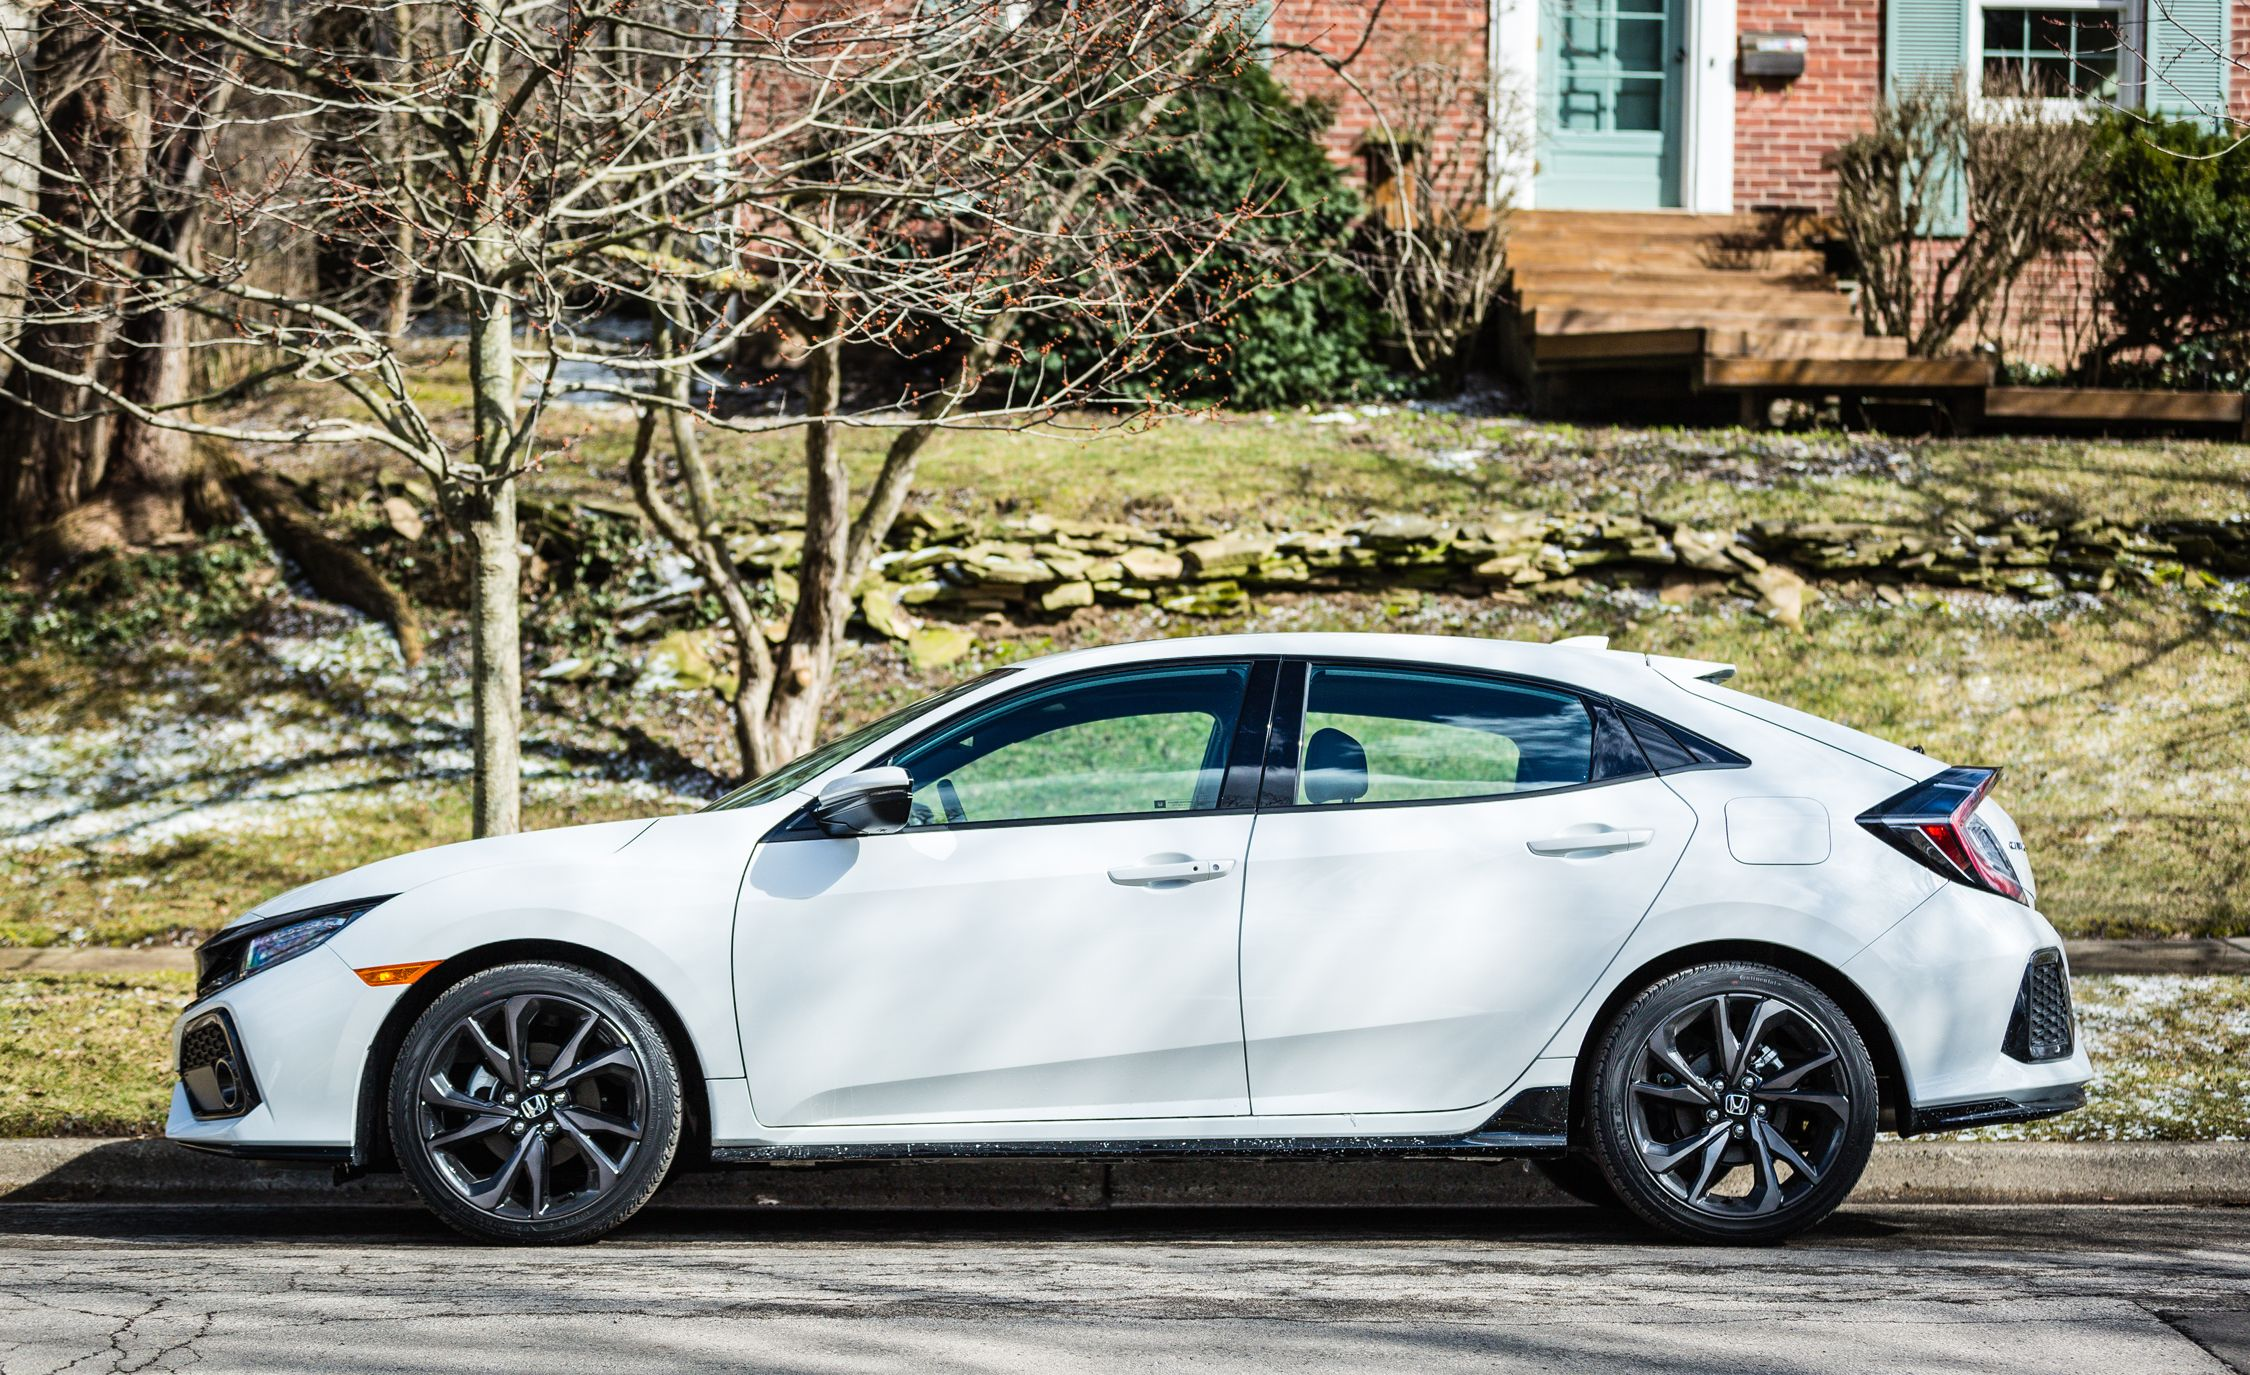 Image Result For Civic Exterior And Interior Review